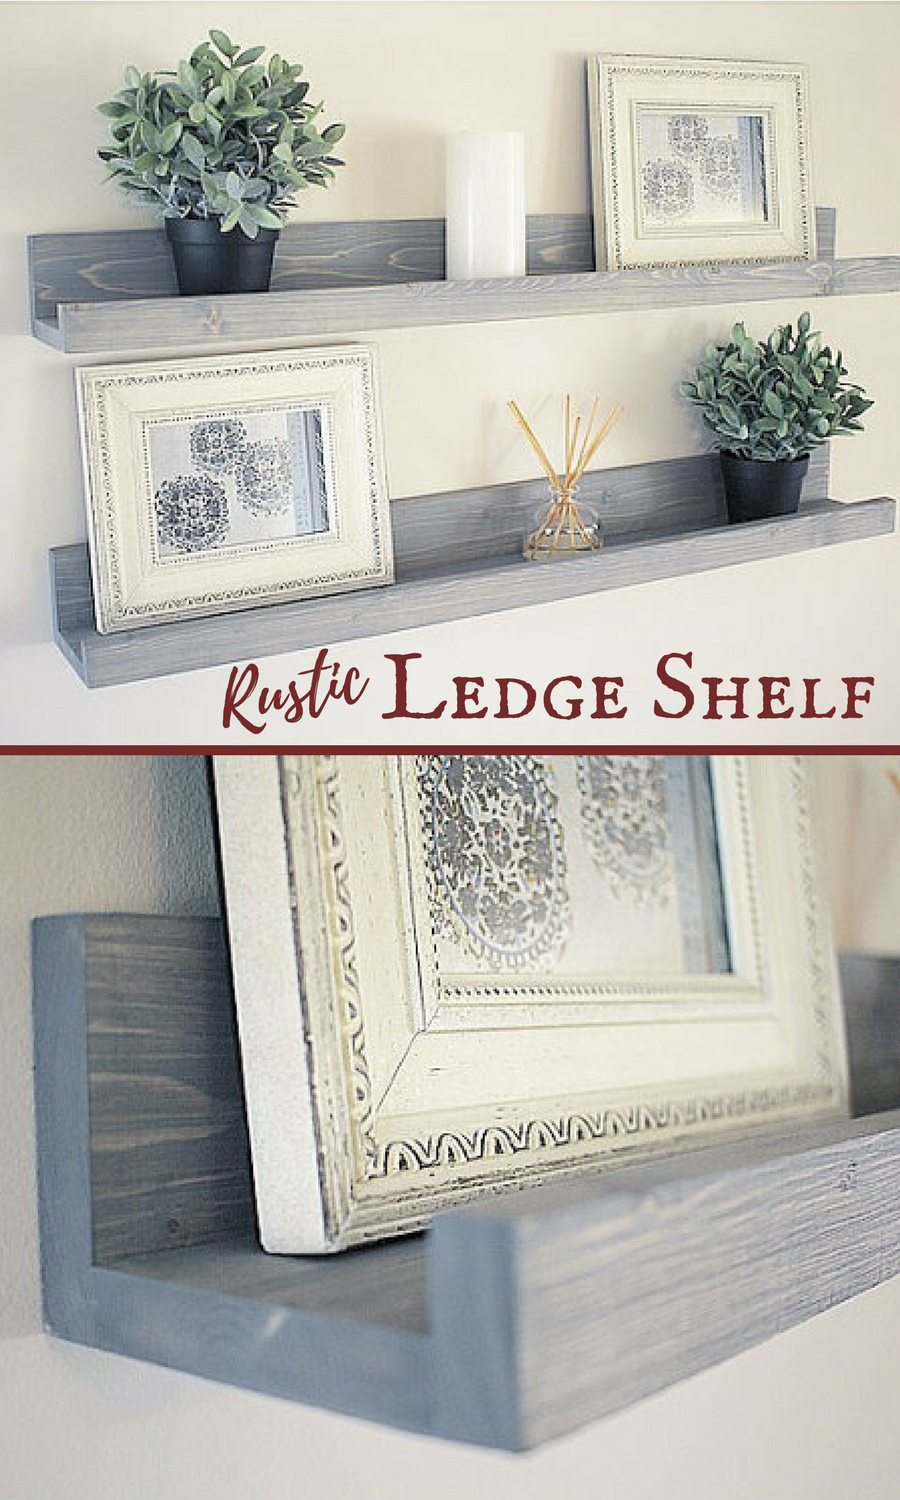 I love the functionality of this rustic ledge shelf and beautiful